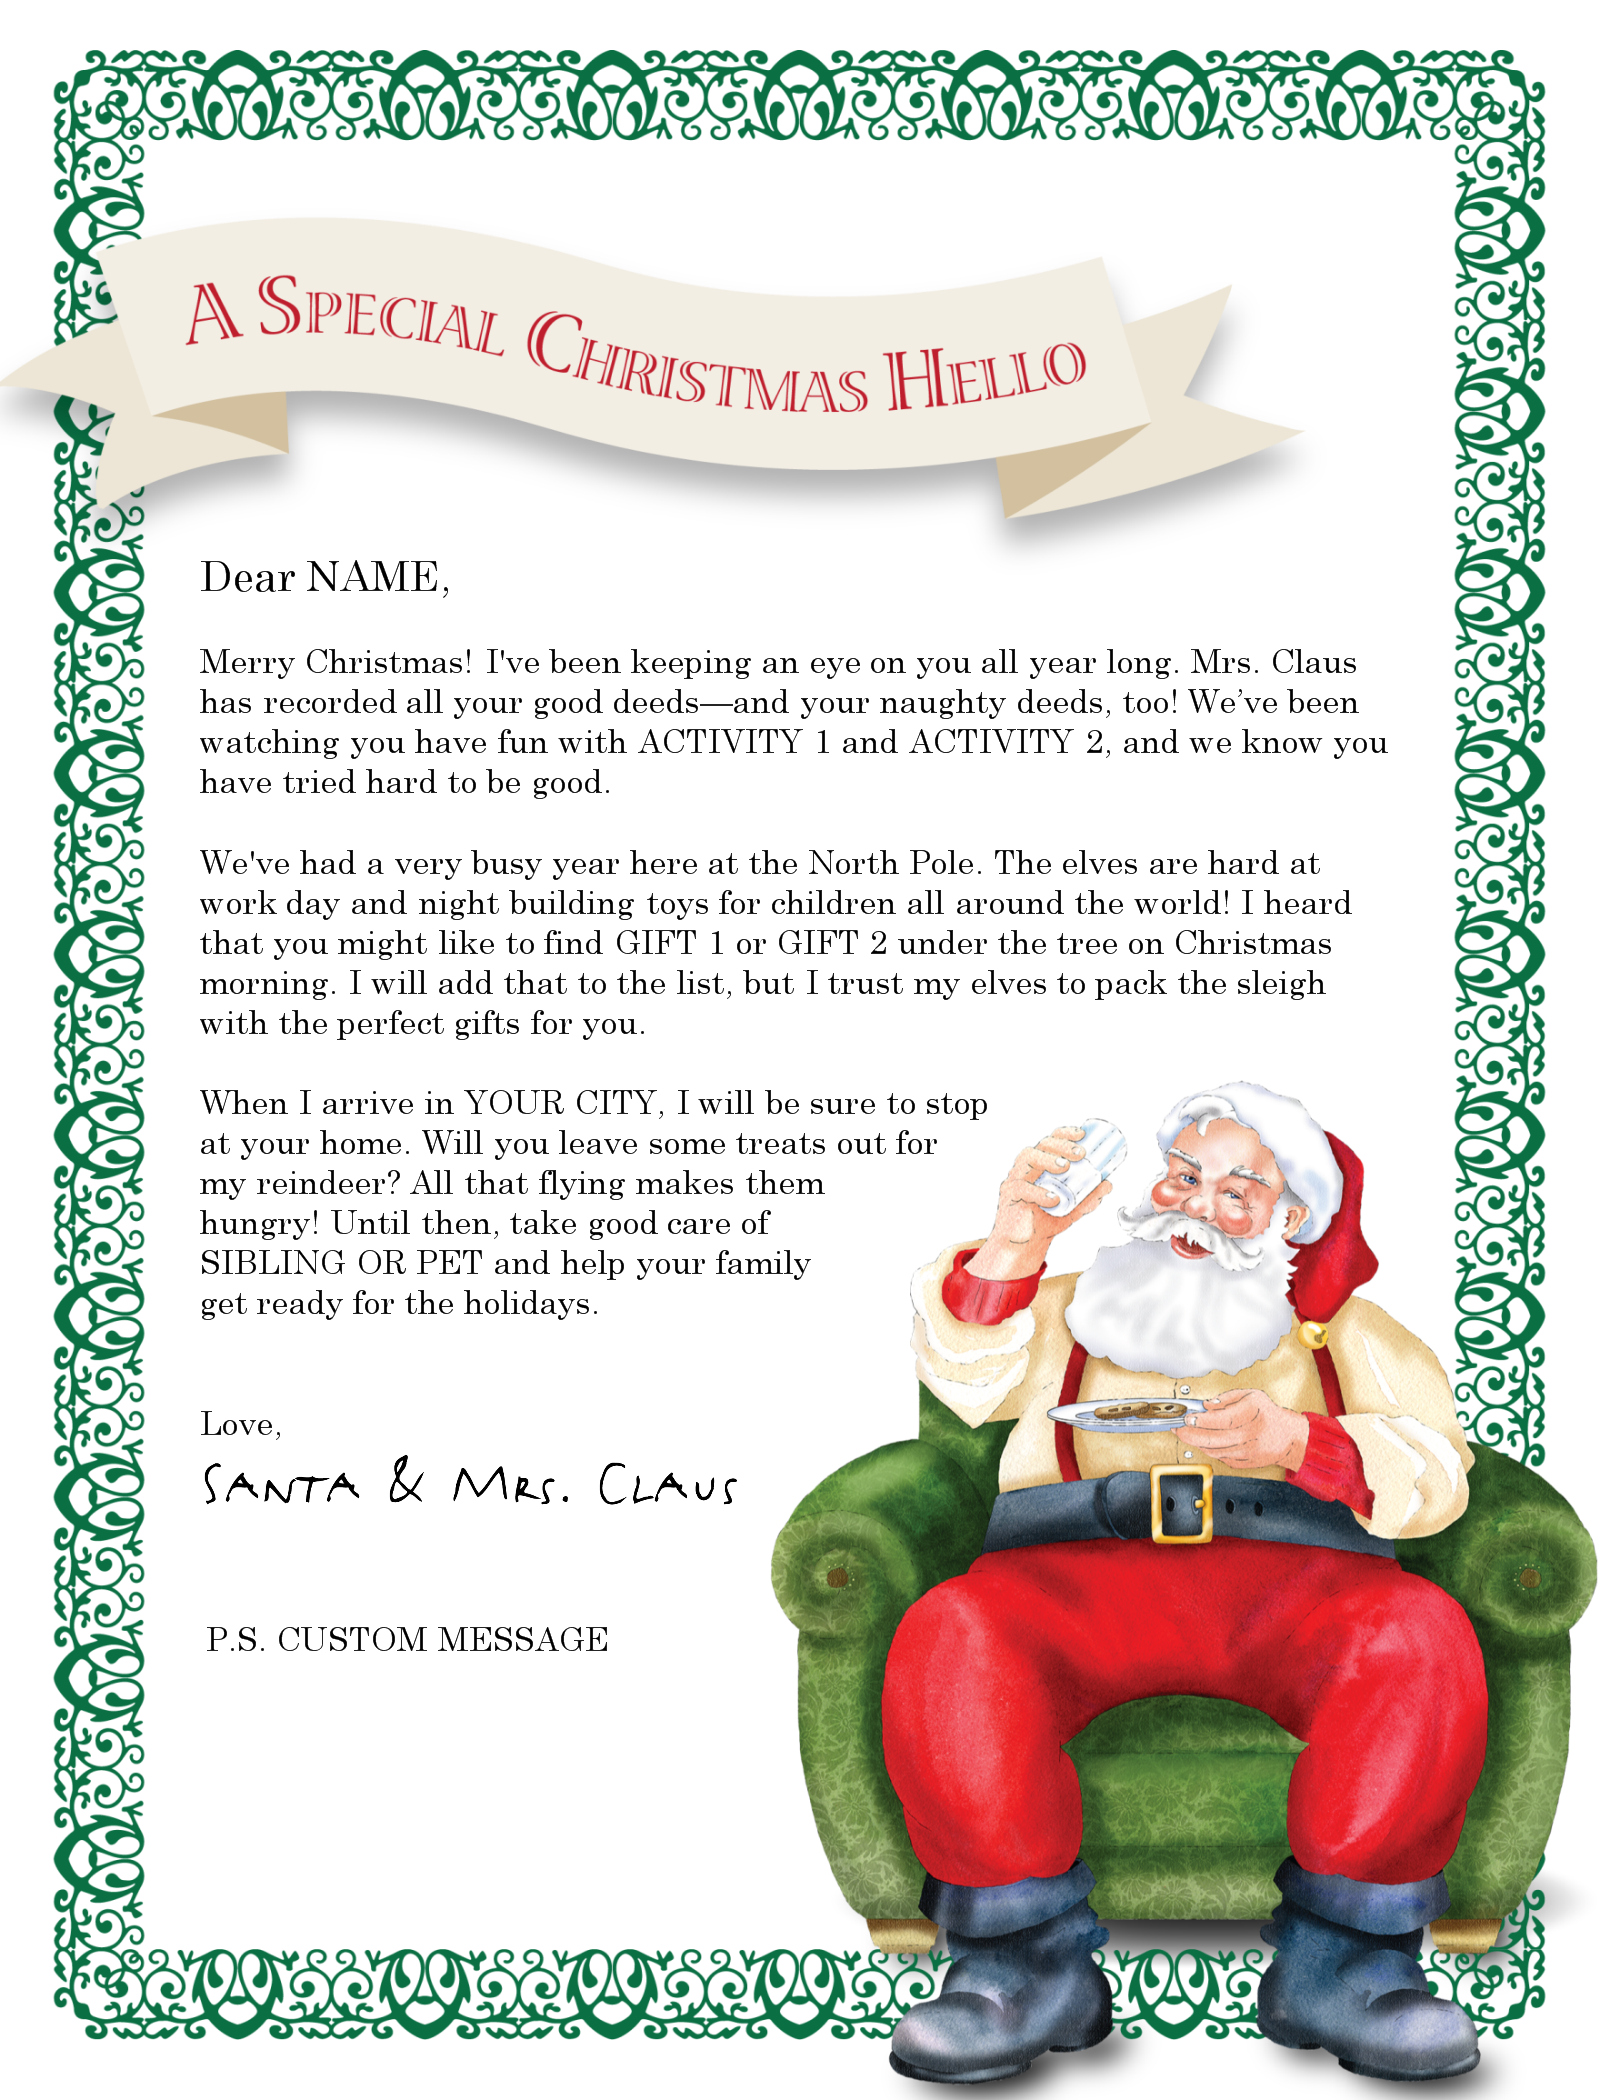 Letter From Santa Templates Free | TRY IT FREE! login learn more ...